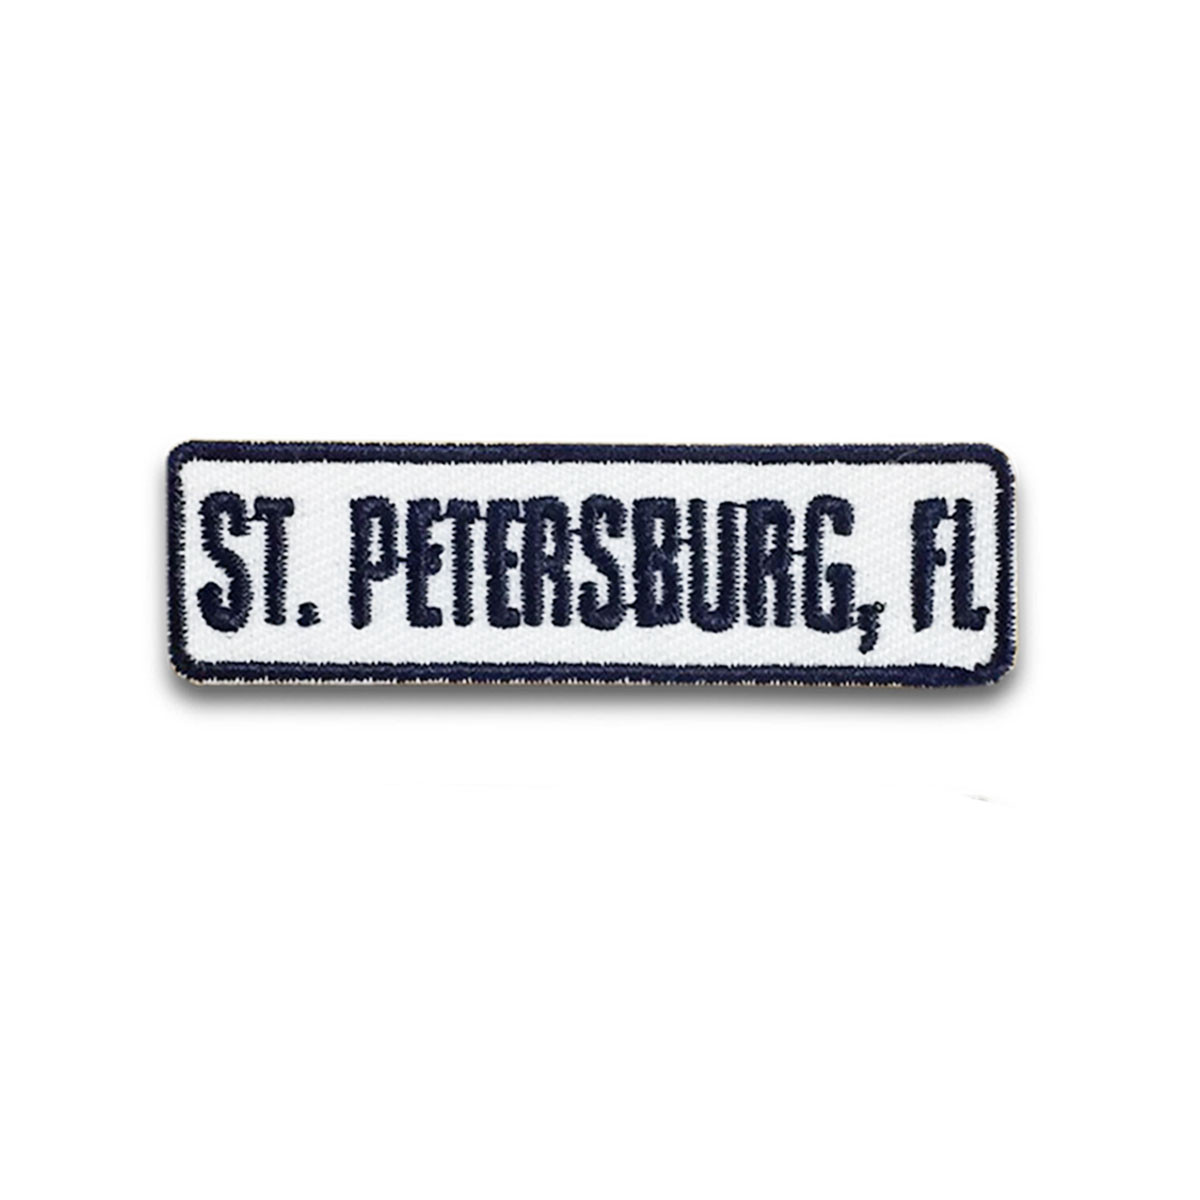 St. Petersburg, FL Rocker Patch